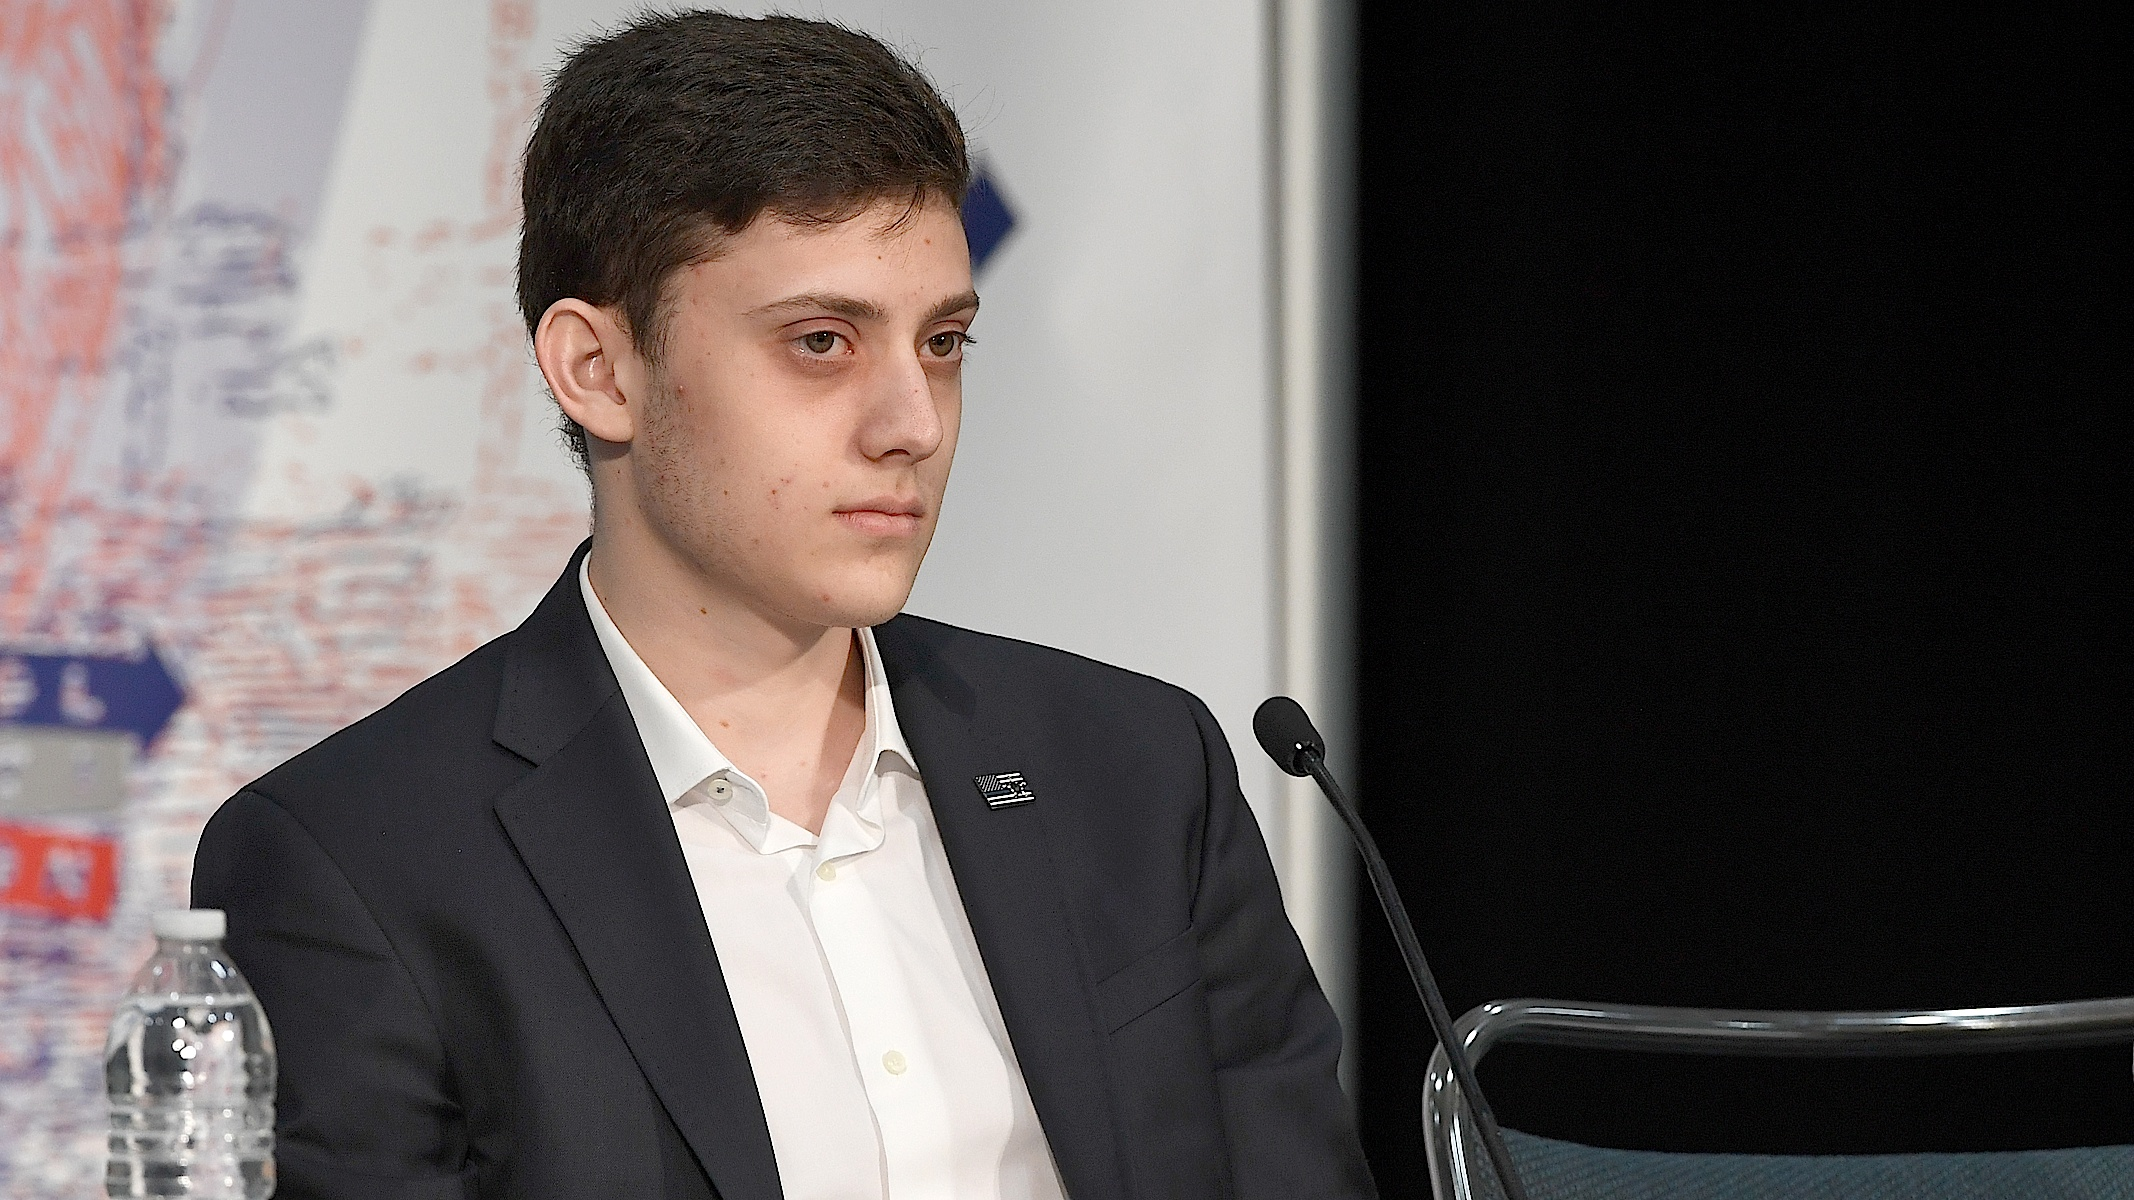 Harvard Rescinding Kyle Kashuv's Admission Over Racist Texts Is a Sign of Much-Needed Growth